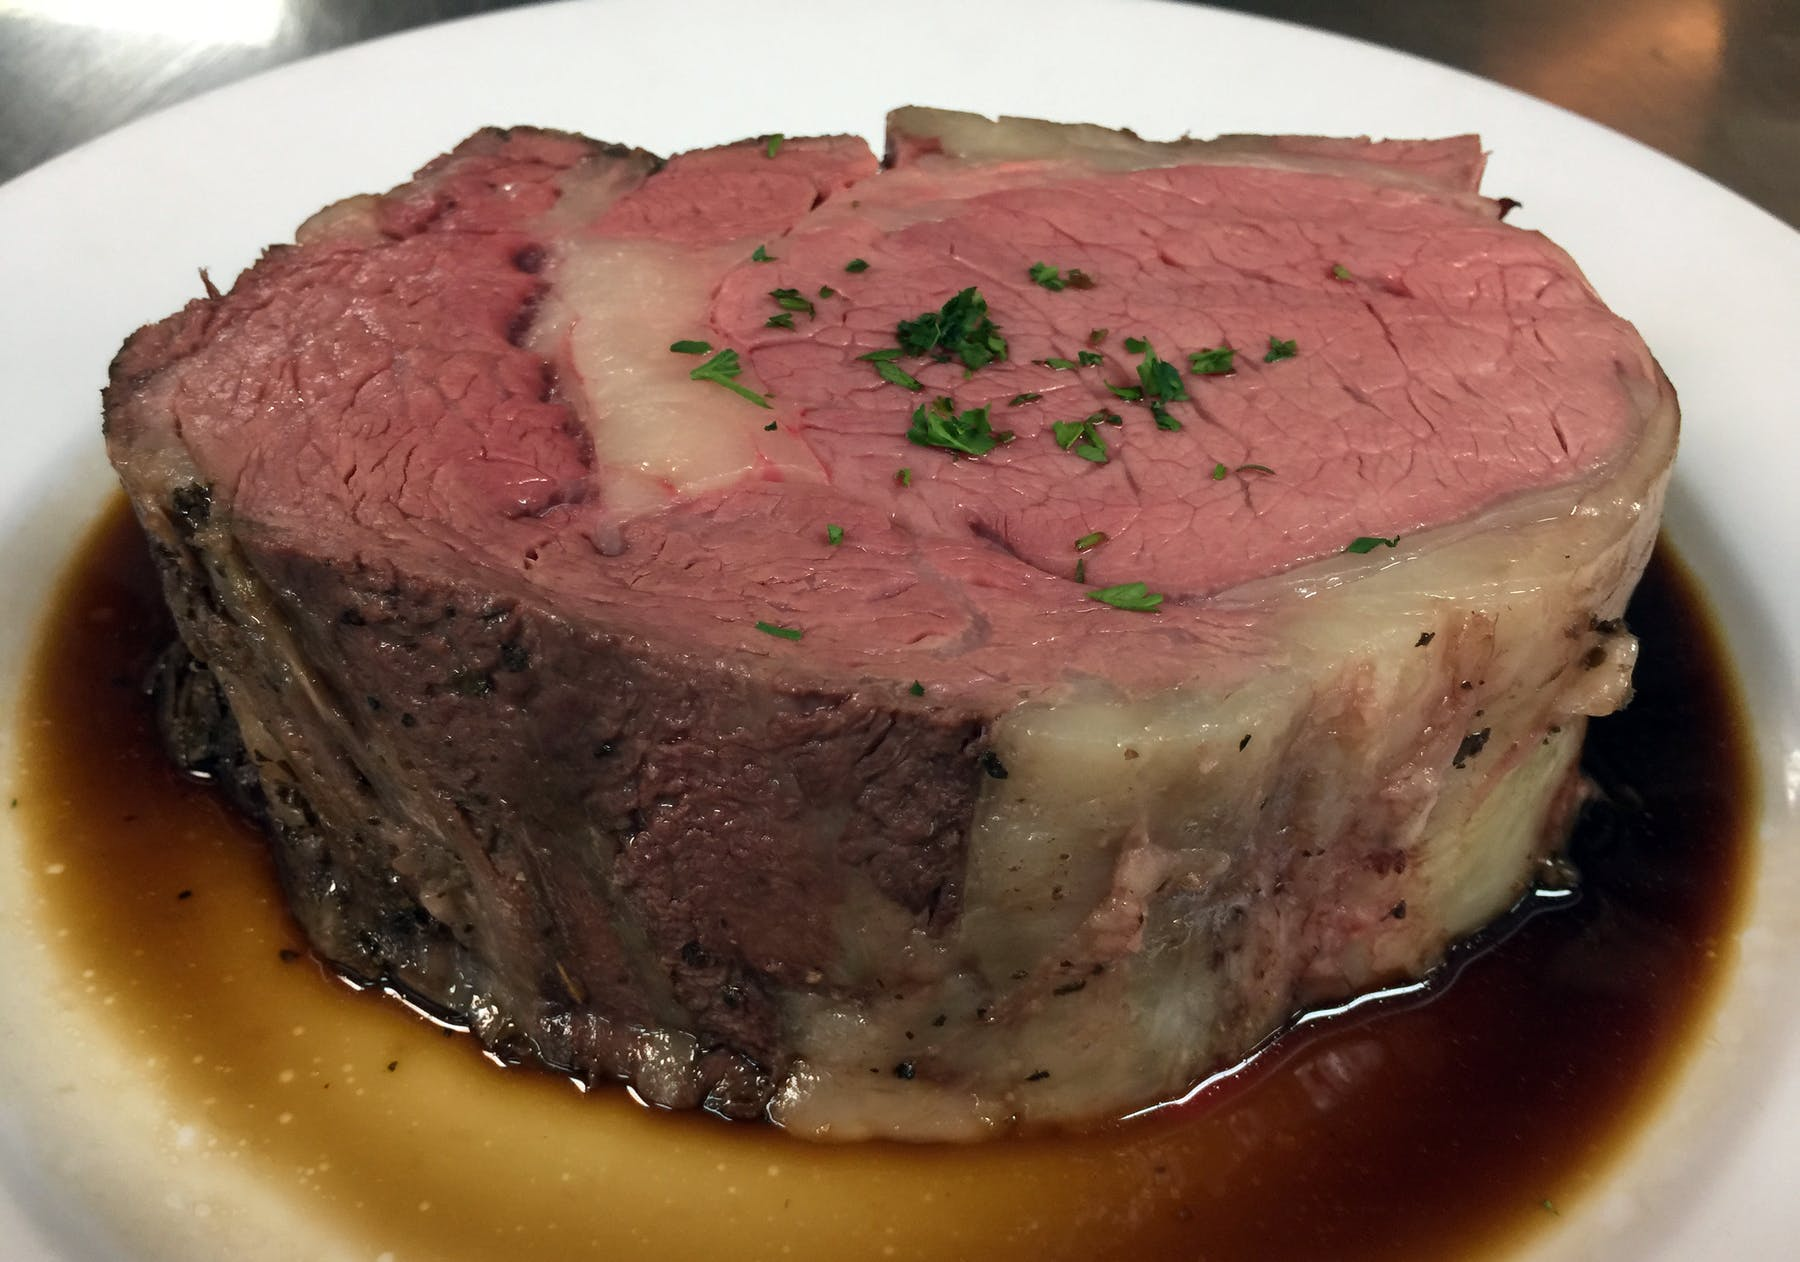 a piece of prime rib on a plate